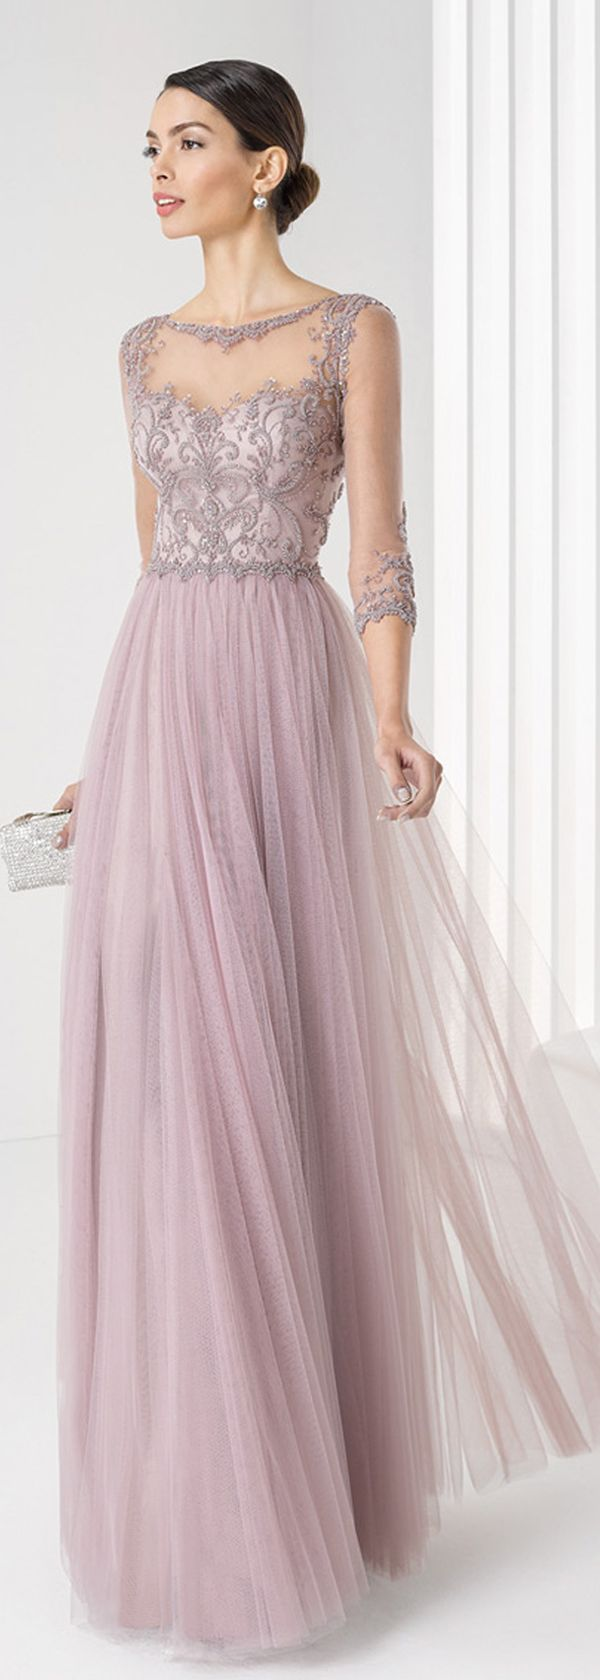 Fabulous Tulle & Satin Bateau Neckline Three-quarter Sleeves Floor-length A-line Evening Dresses with Embroidery